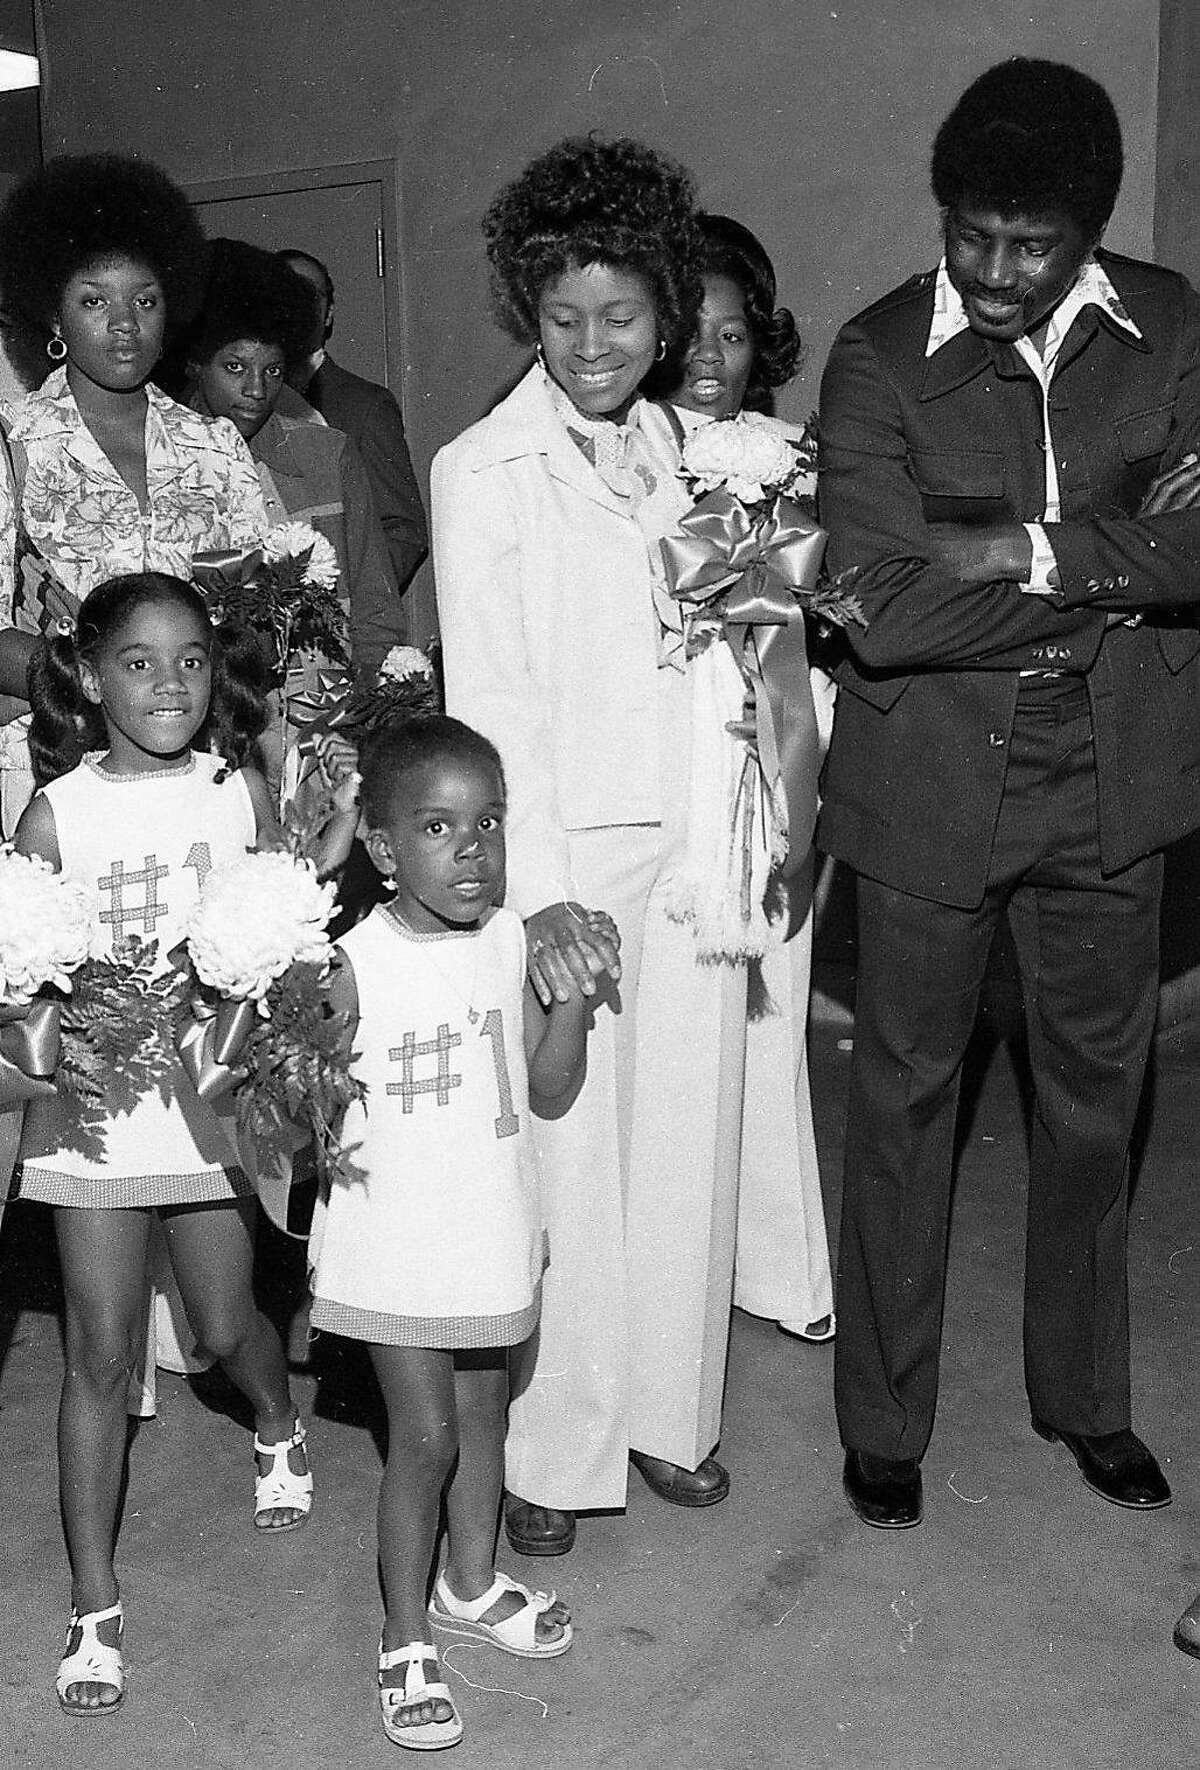 At the Golden State Warriors Awards ceremony at the Oakland Coliseum, after winning the NBA Championship, Ericka Attles and Jodty Roberts, daughter of assistant coach Joe Roberts where white dresses with blue #1, May 29, 1975